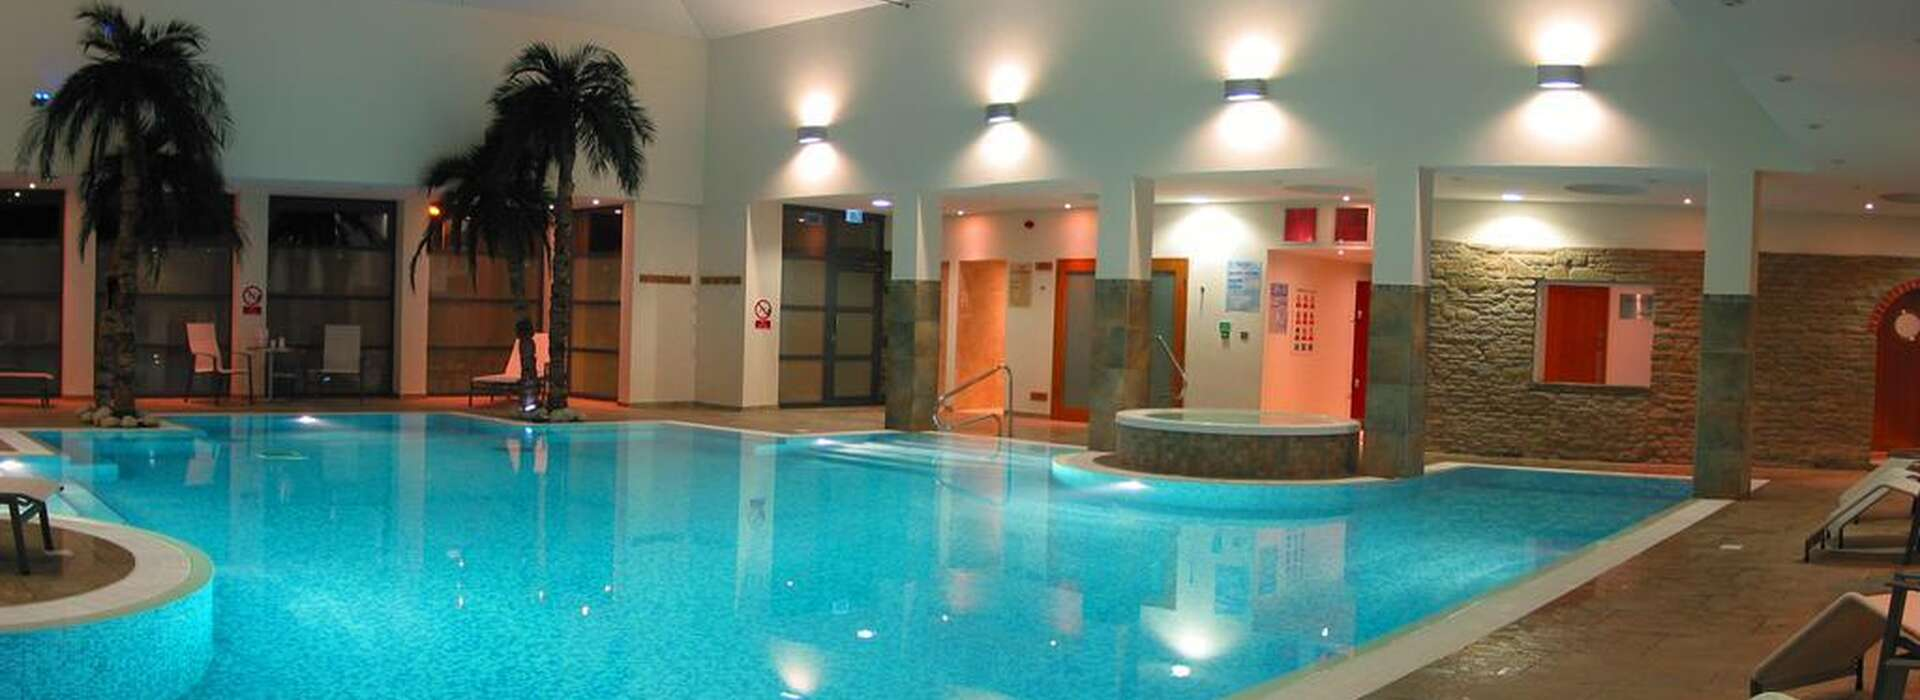 Burton Hotel Kington Spa